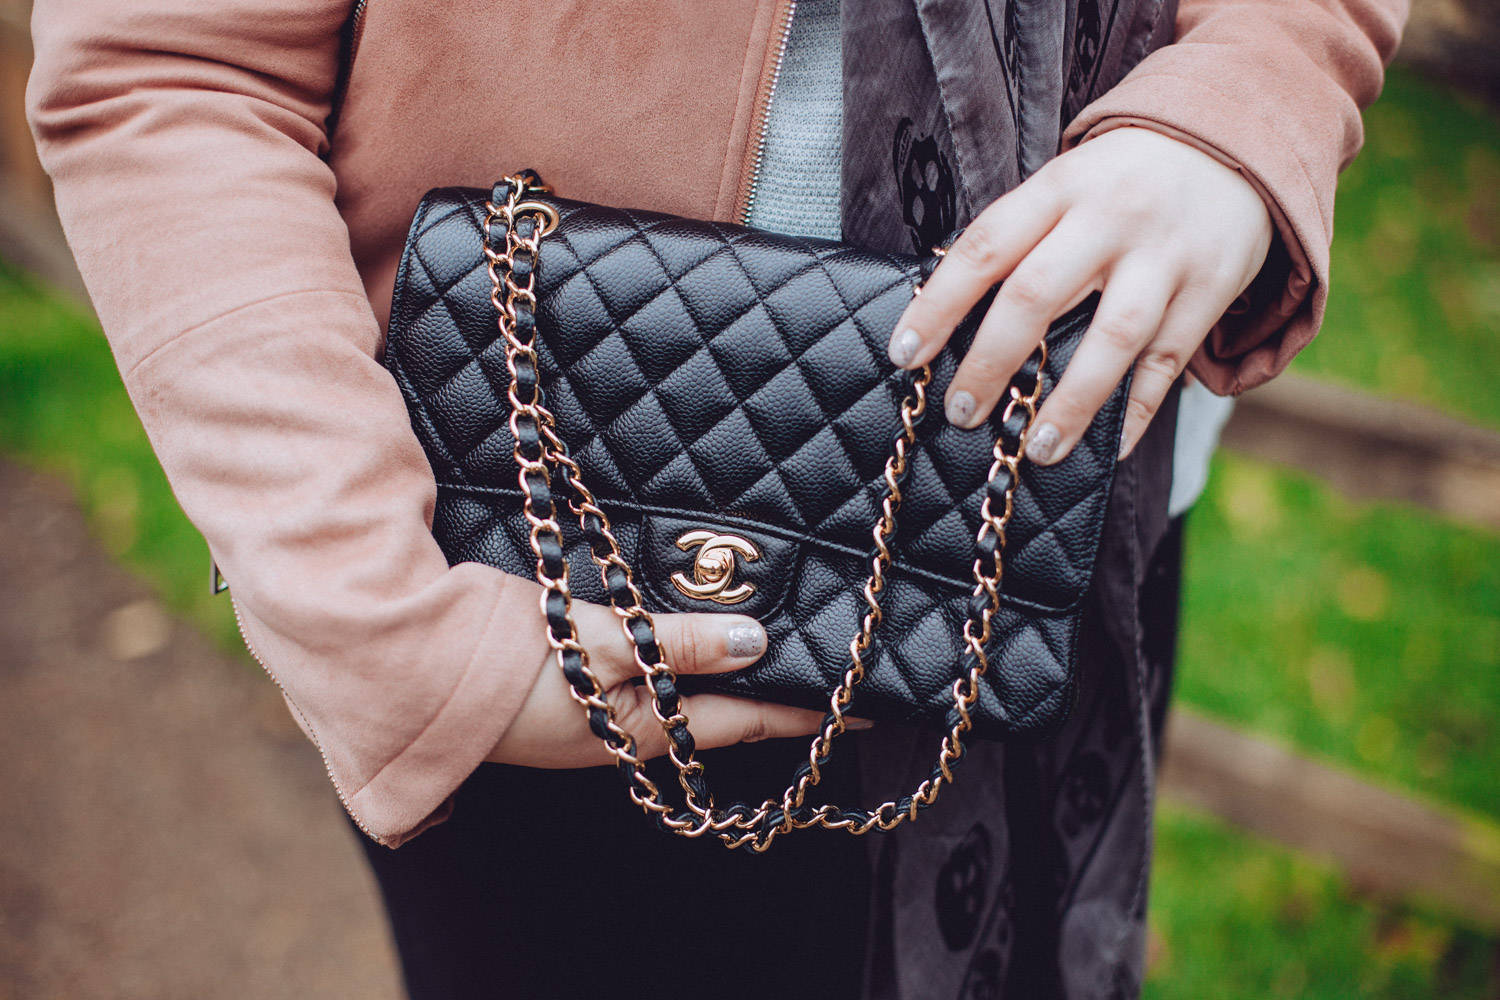 Things to consider before splashing out on a designer bag